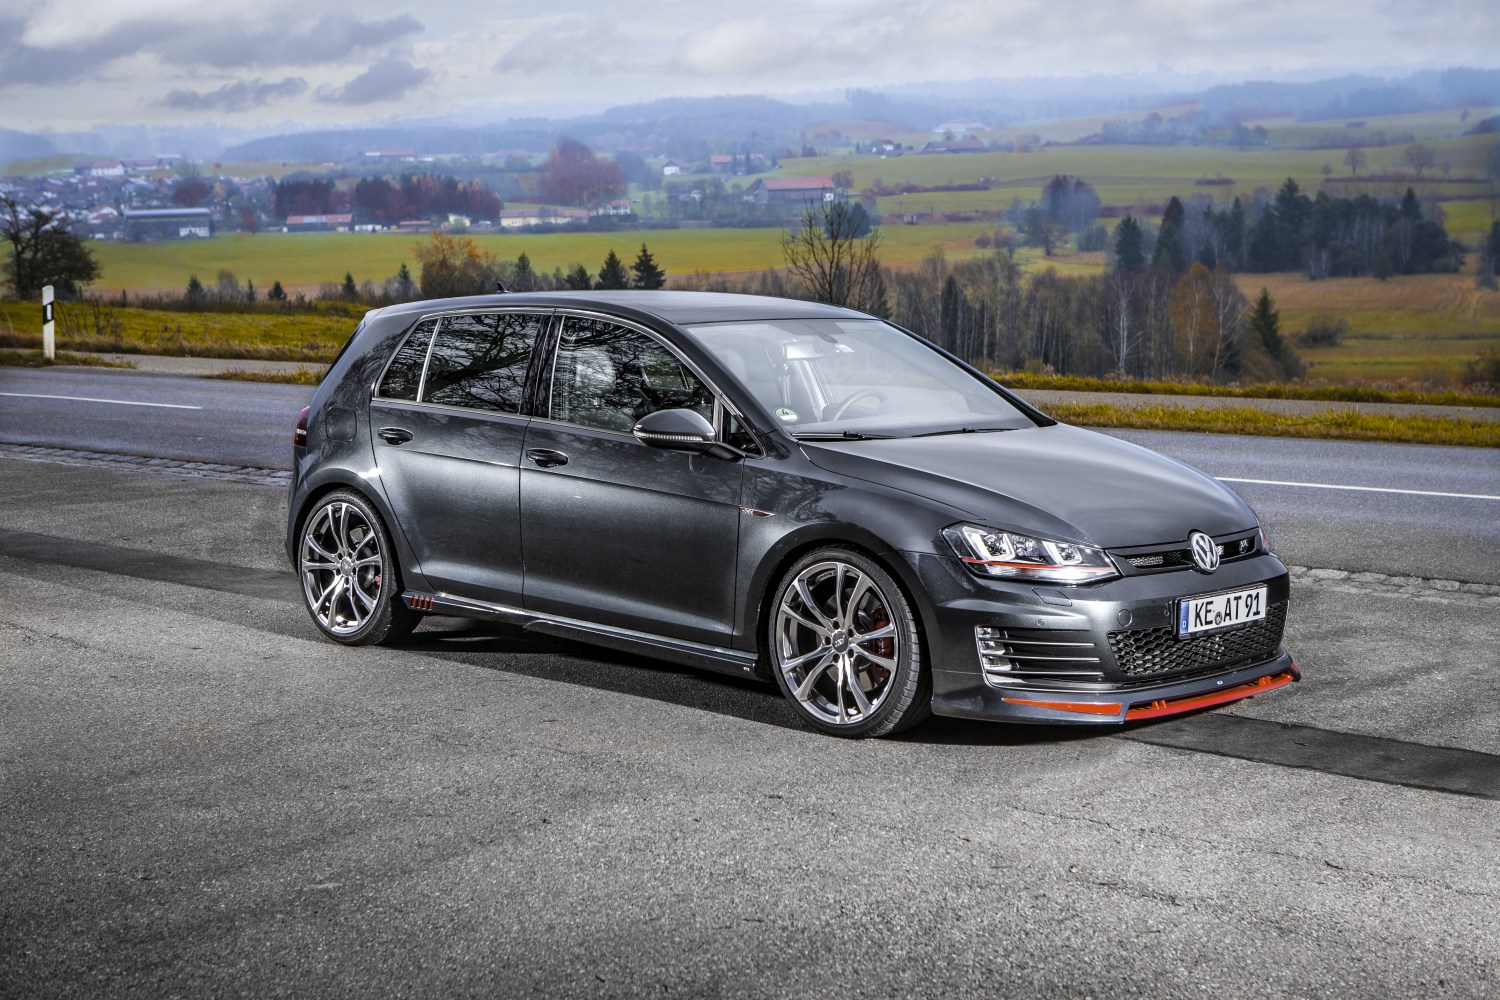 abt golf vii gti gets fresh look gtspirit. Black Bedroom Furniture Sets. Home Design Ideas